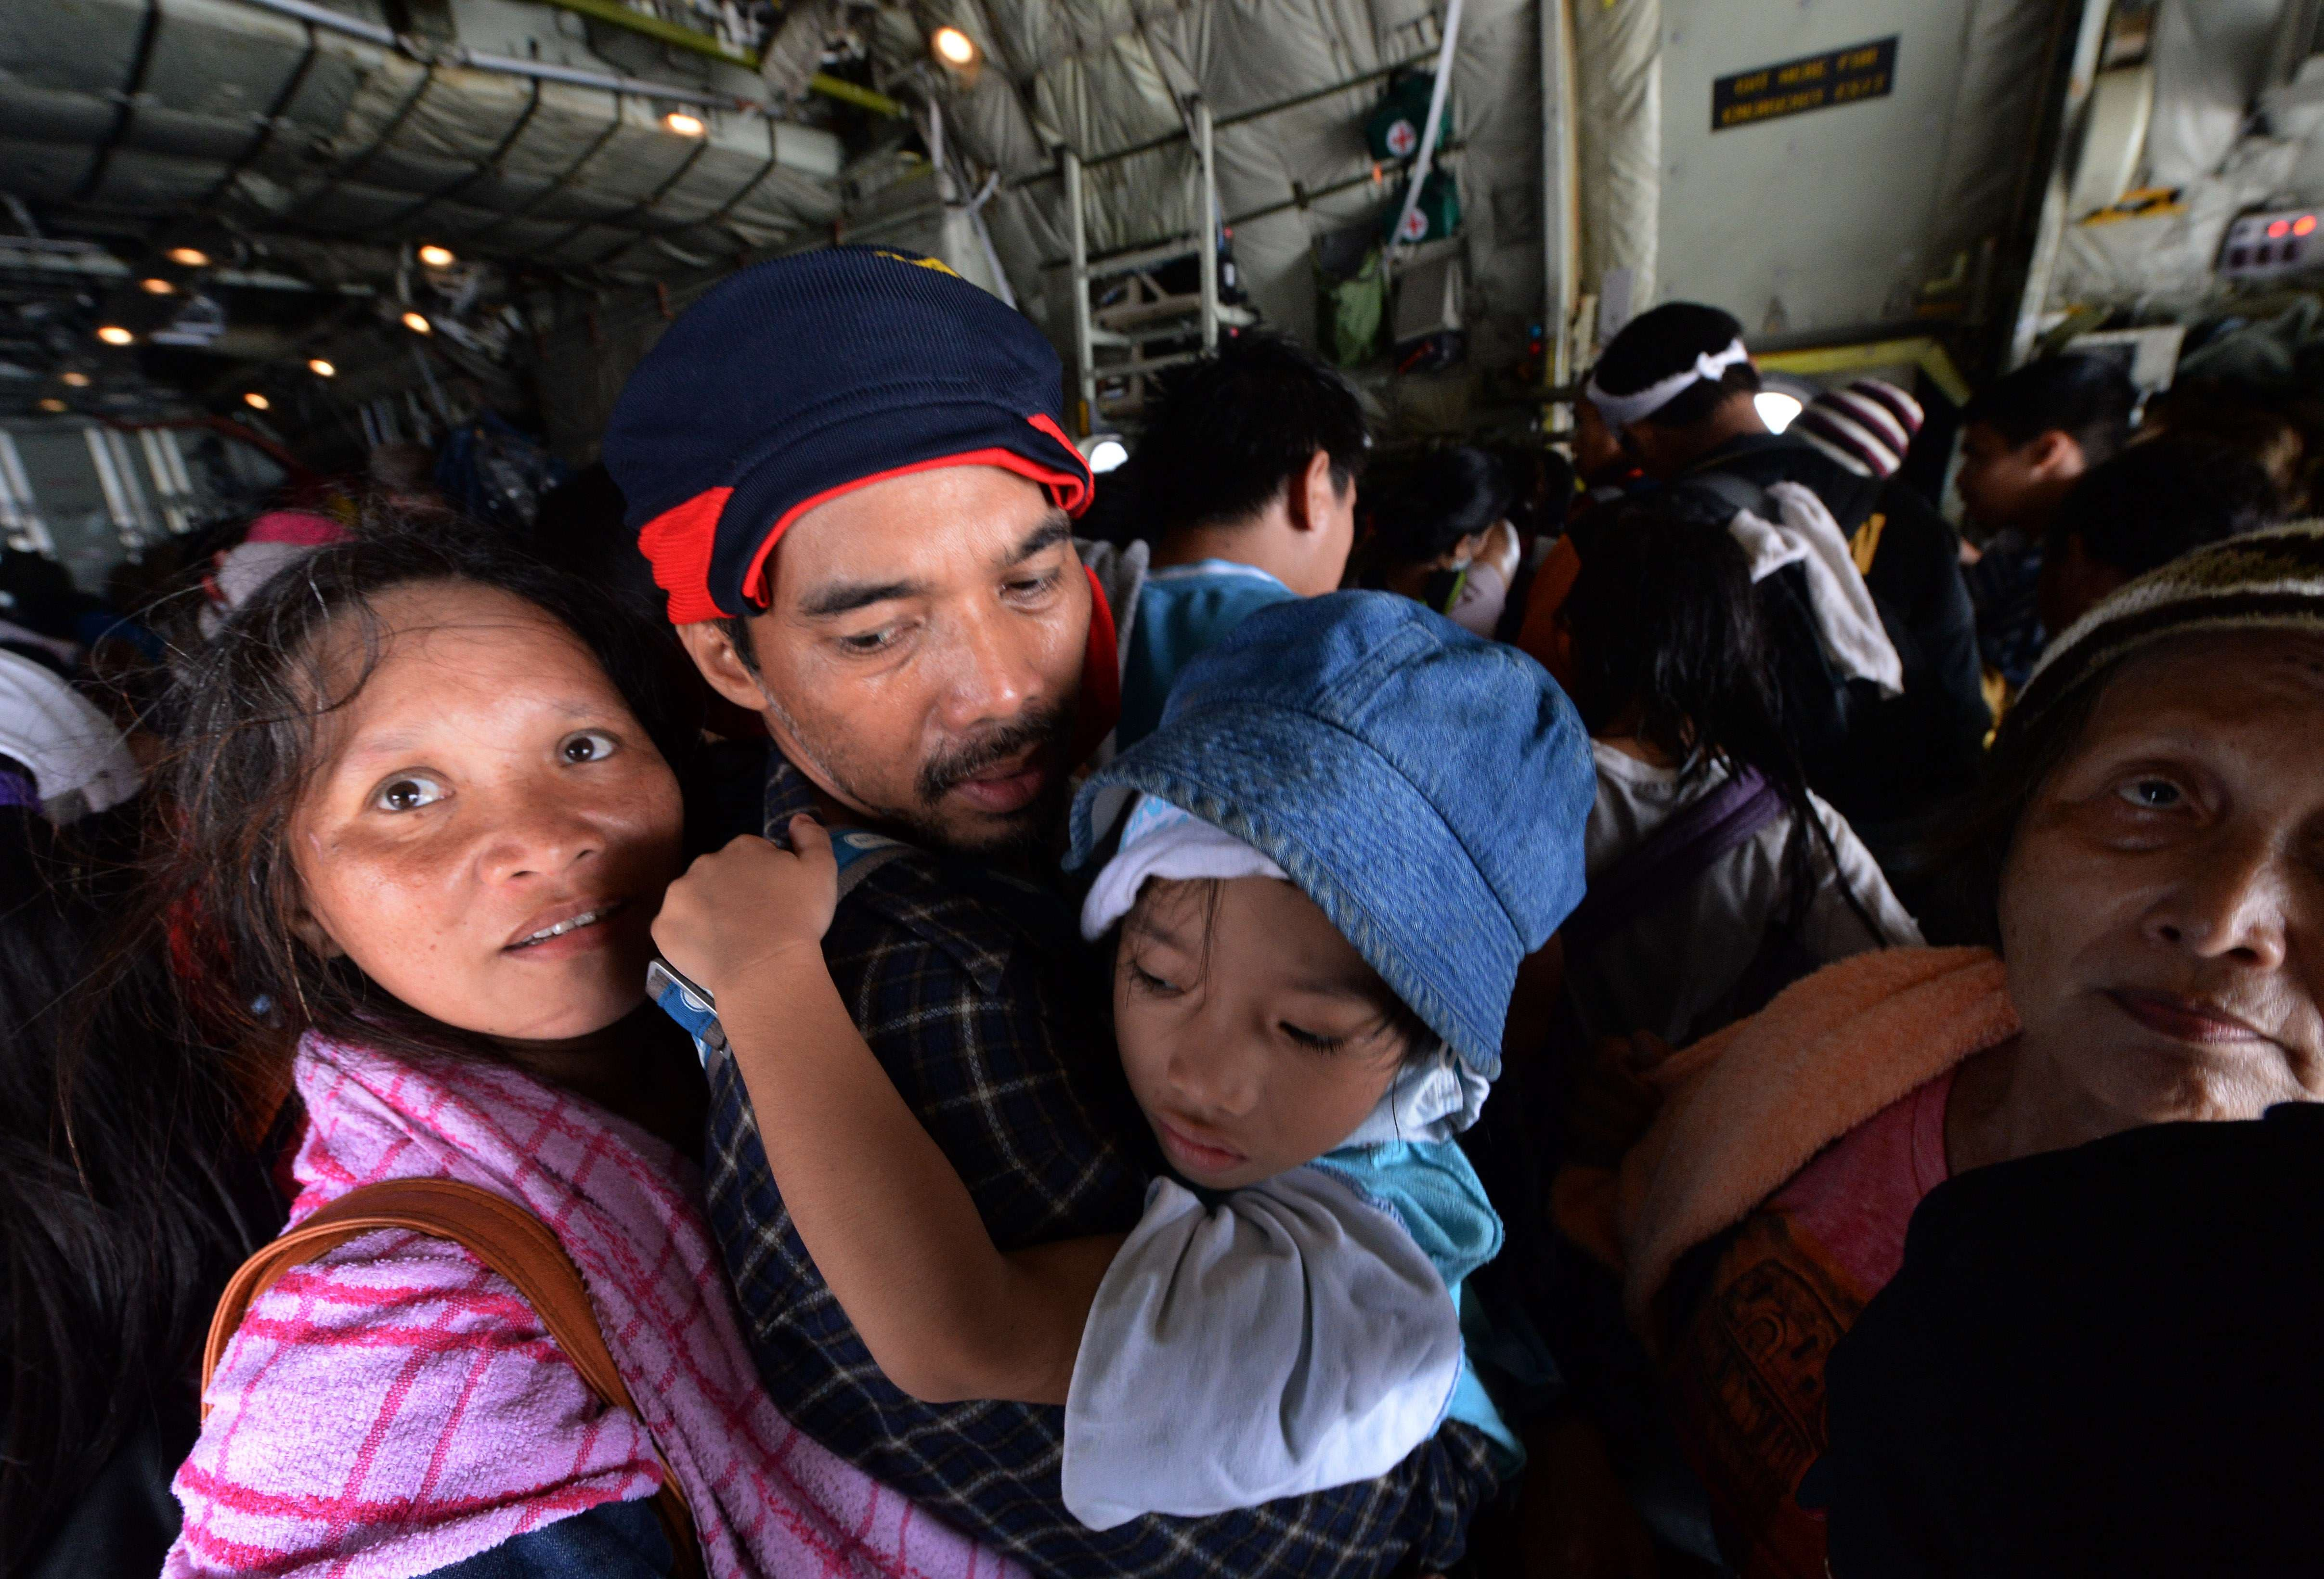 Typhoon survivors board a New Zealand C130 military cargo plane for evacuation at Tacloban airport on Nov. 16, 2013. (AFP)